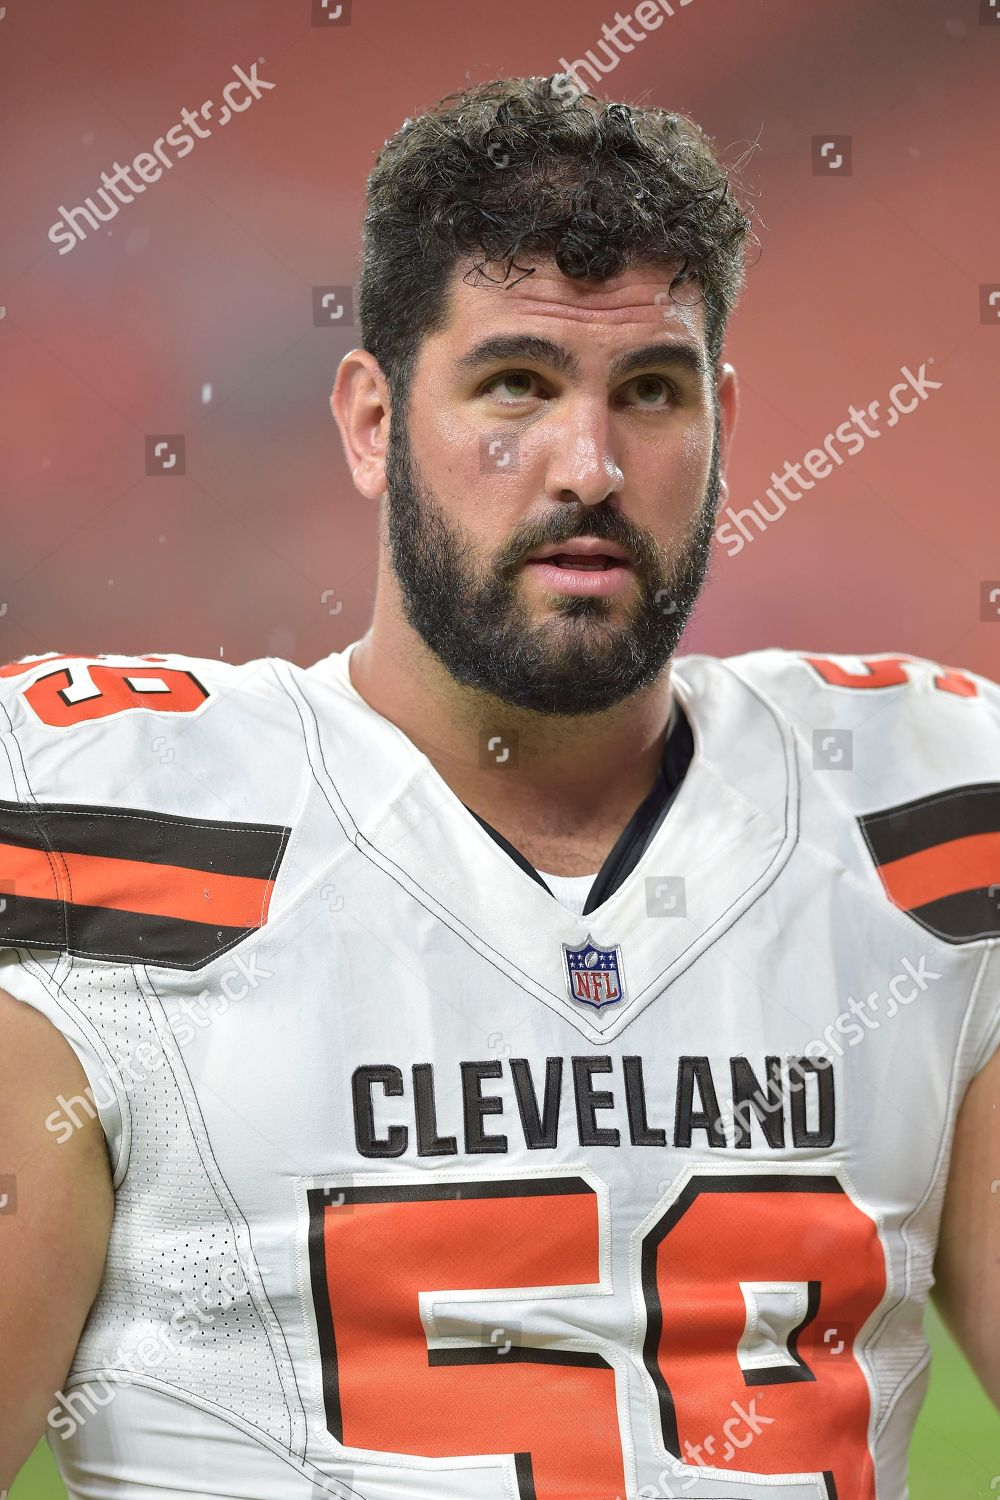 newest 13714 9ca99 Cleveland Browns center Anthony Fabiano 59 walks Editorial ...